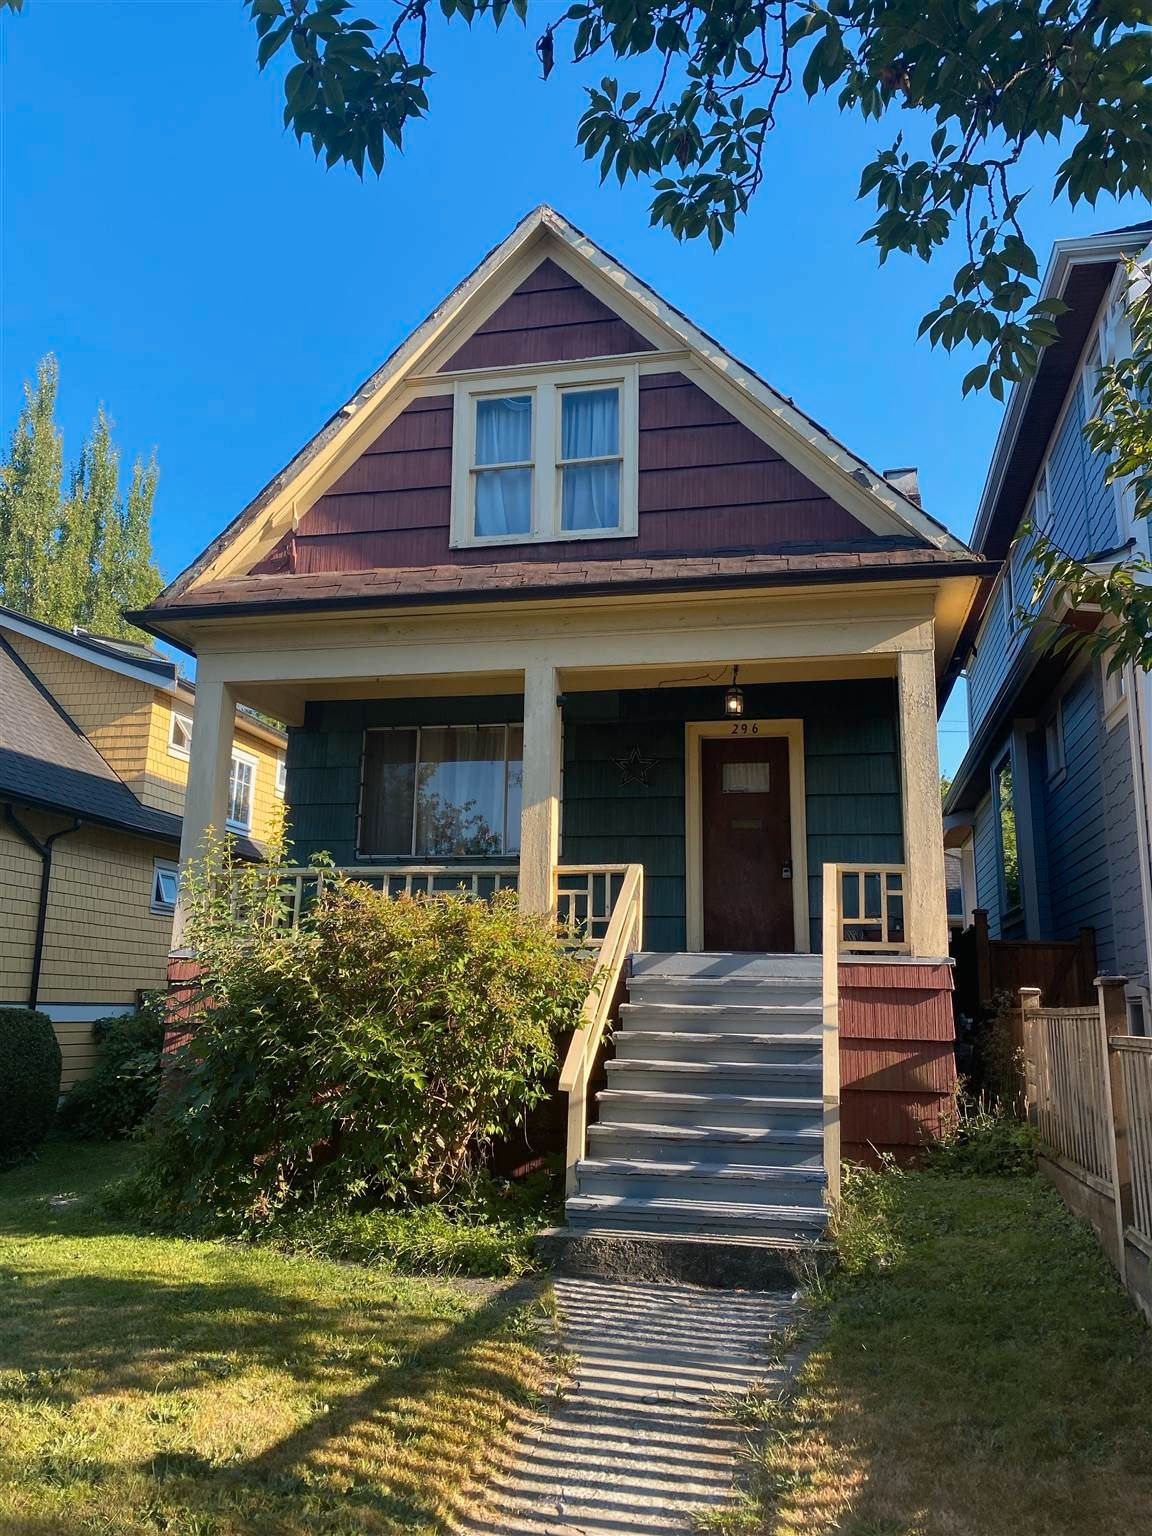 """Main Photo: 296 E 21ST Avenue in Vancouver: Main House for sale in """"MAIN STREET"""" (Vancouver East)  : MLS®# R2600895"""